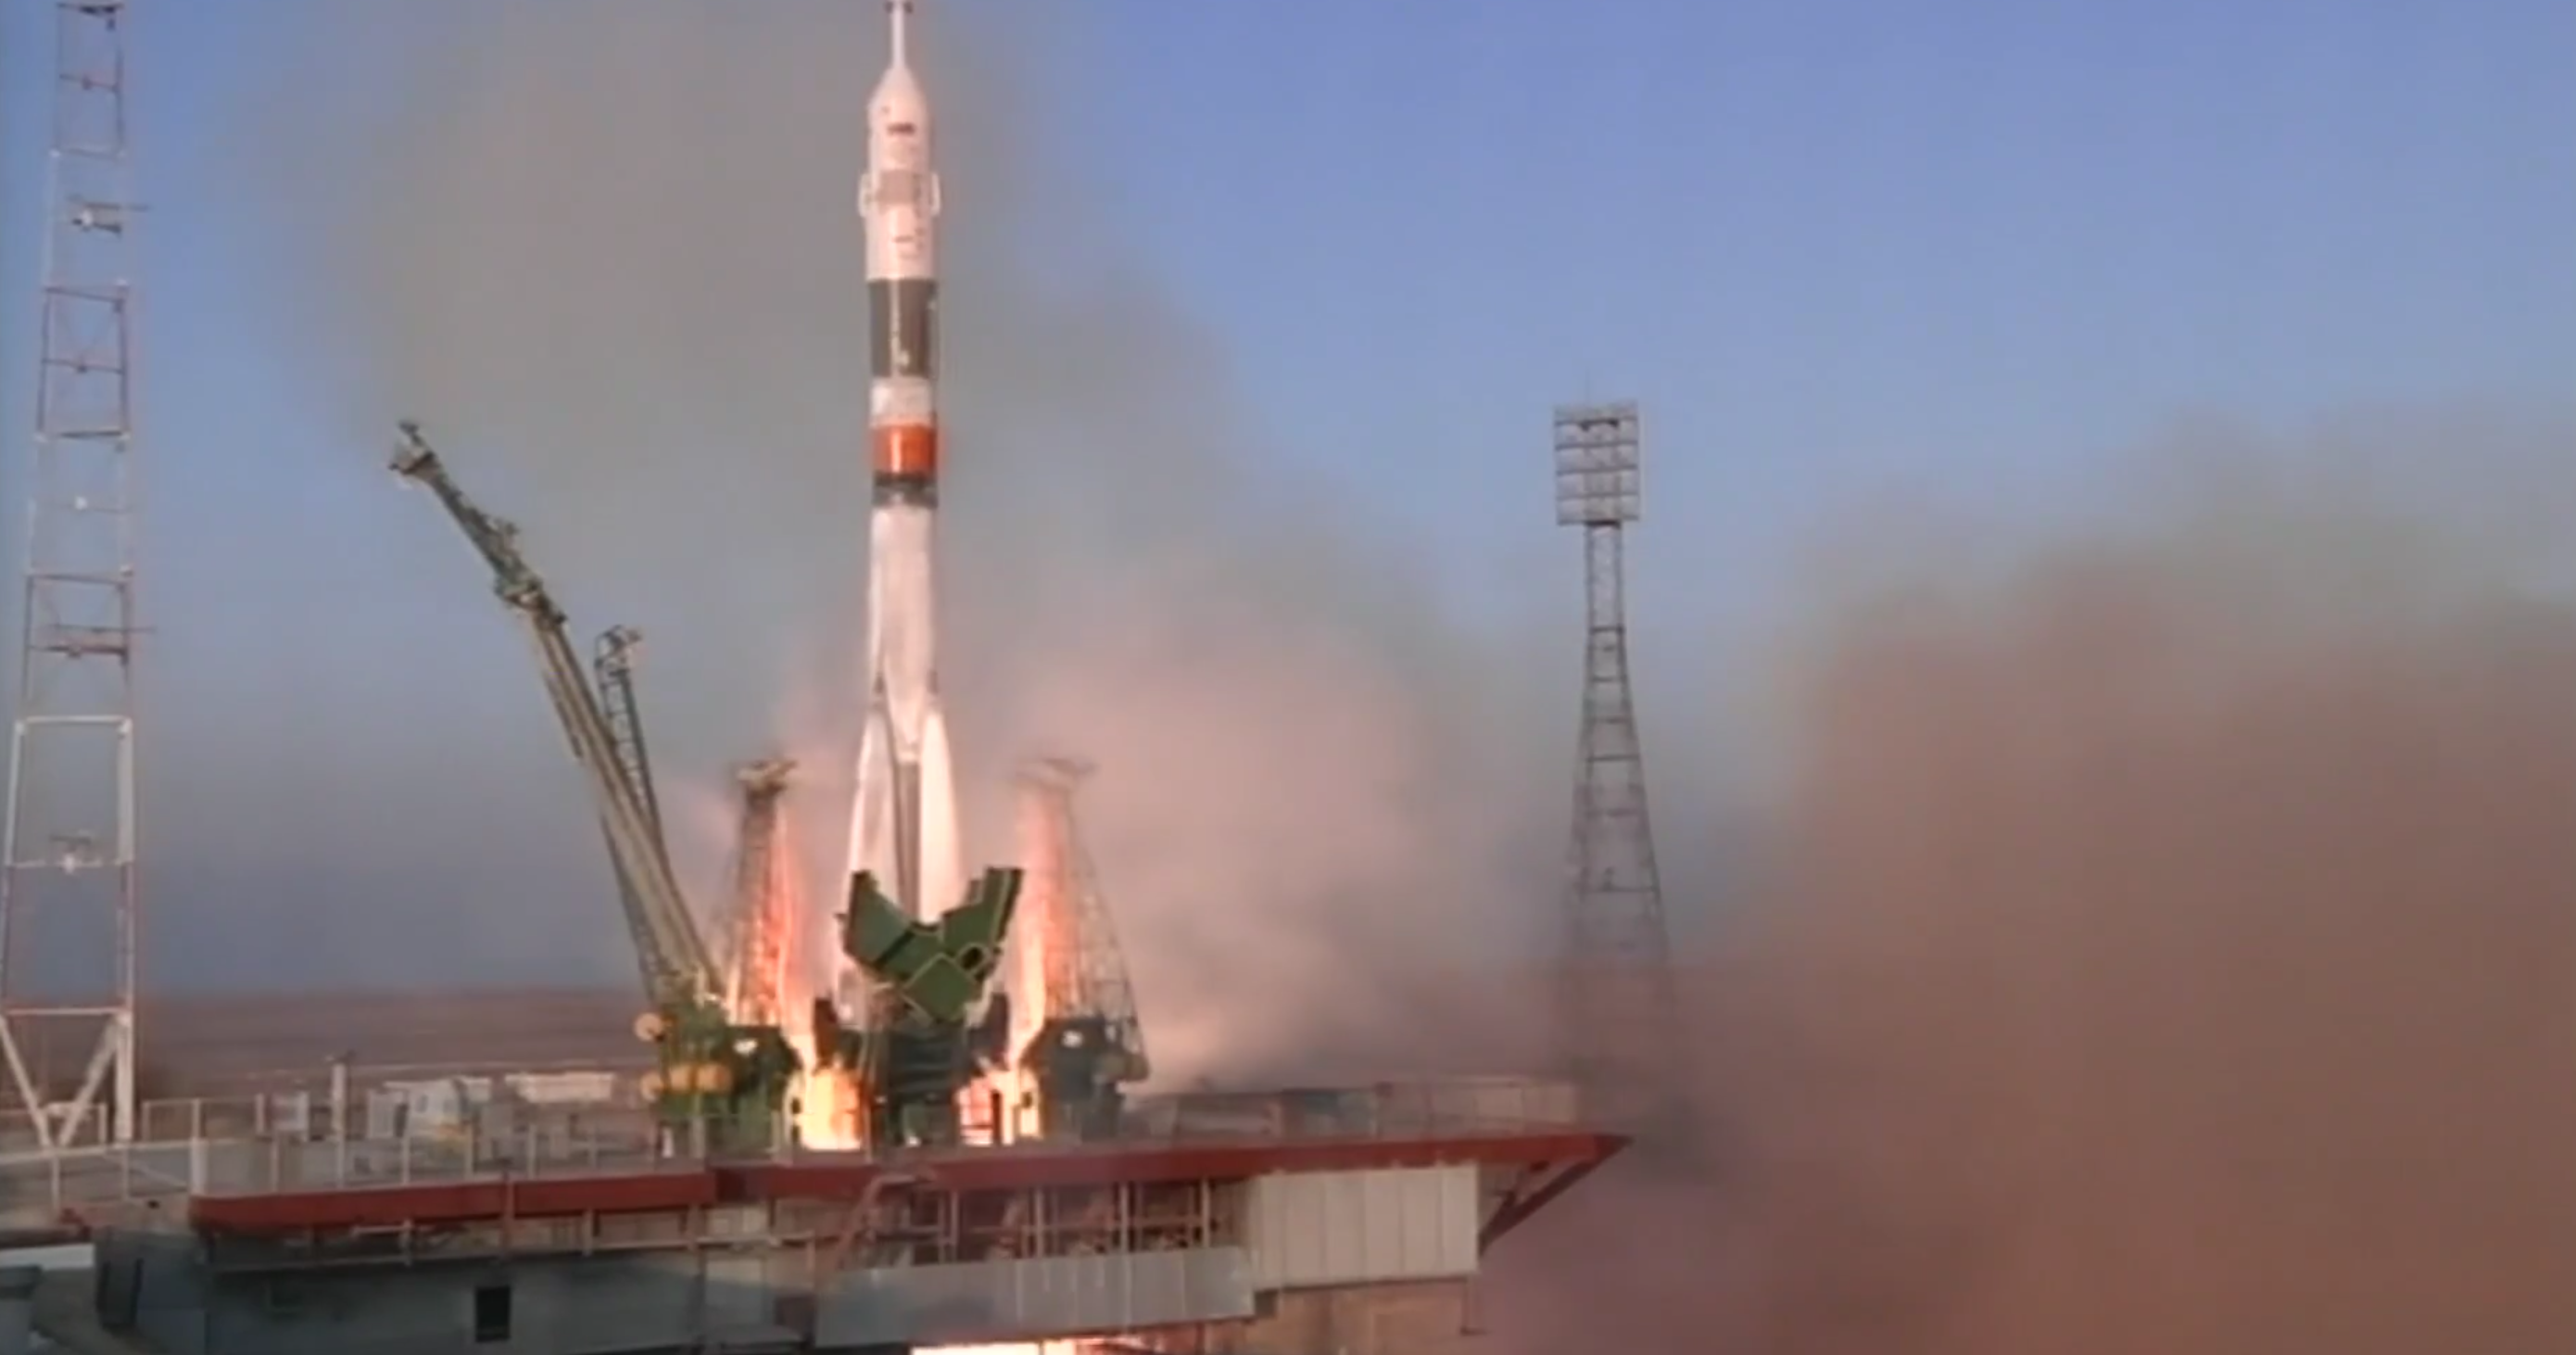 The rocket carrying Expedition 46 blasts off from the Earth.